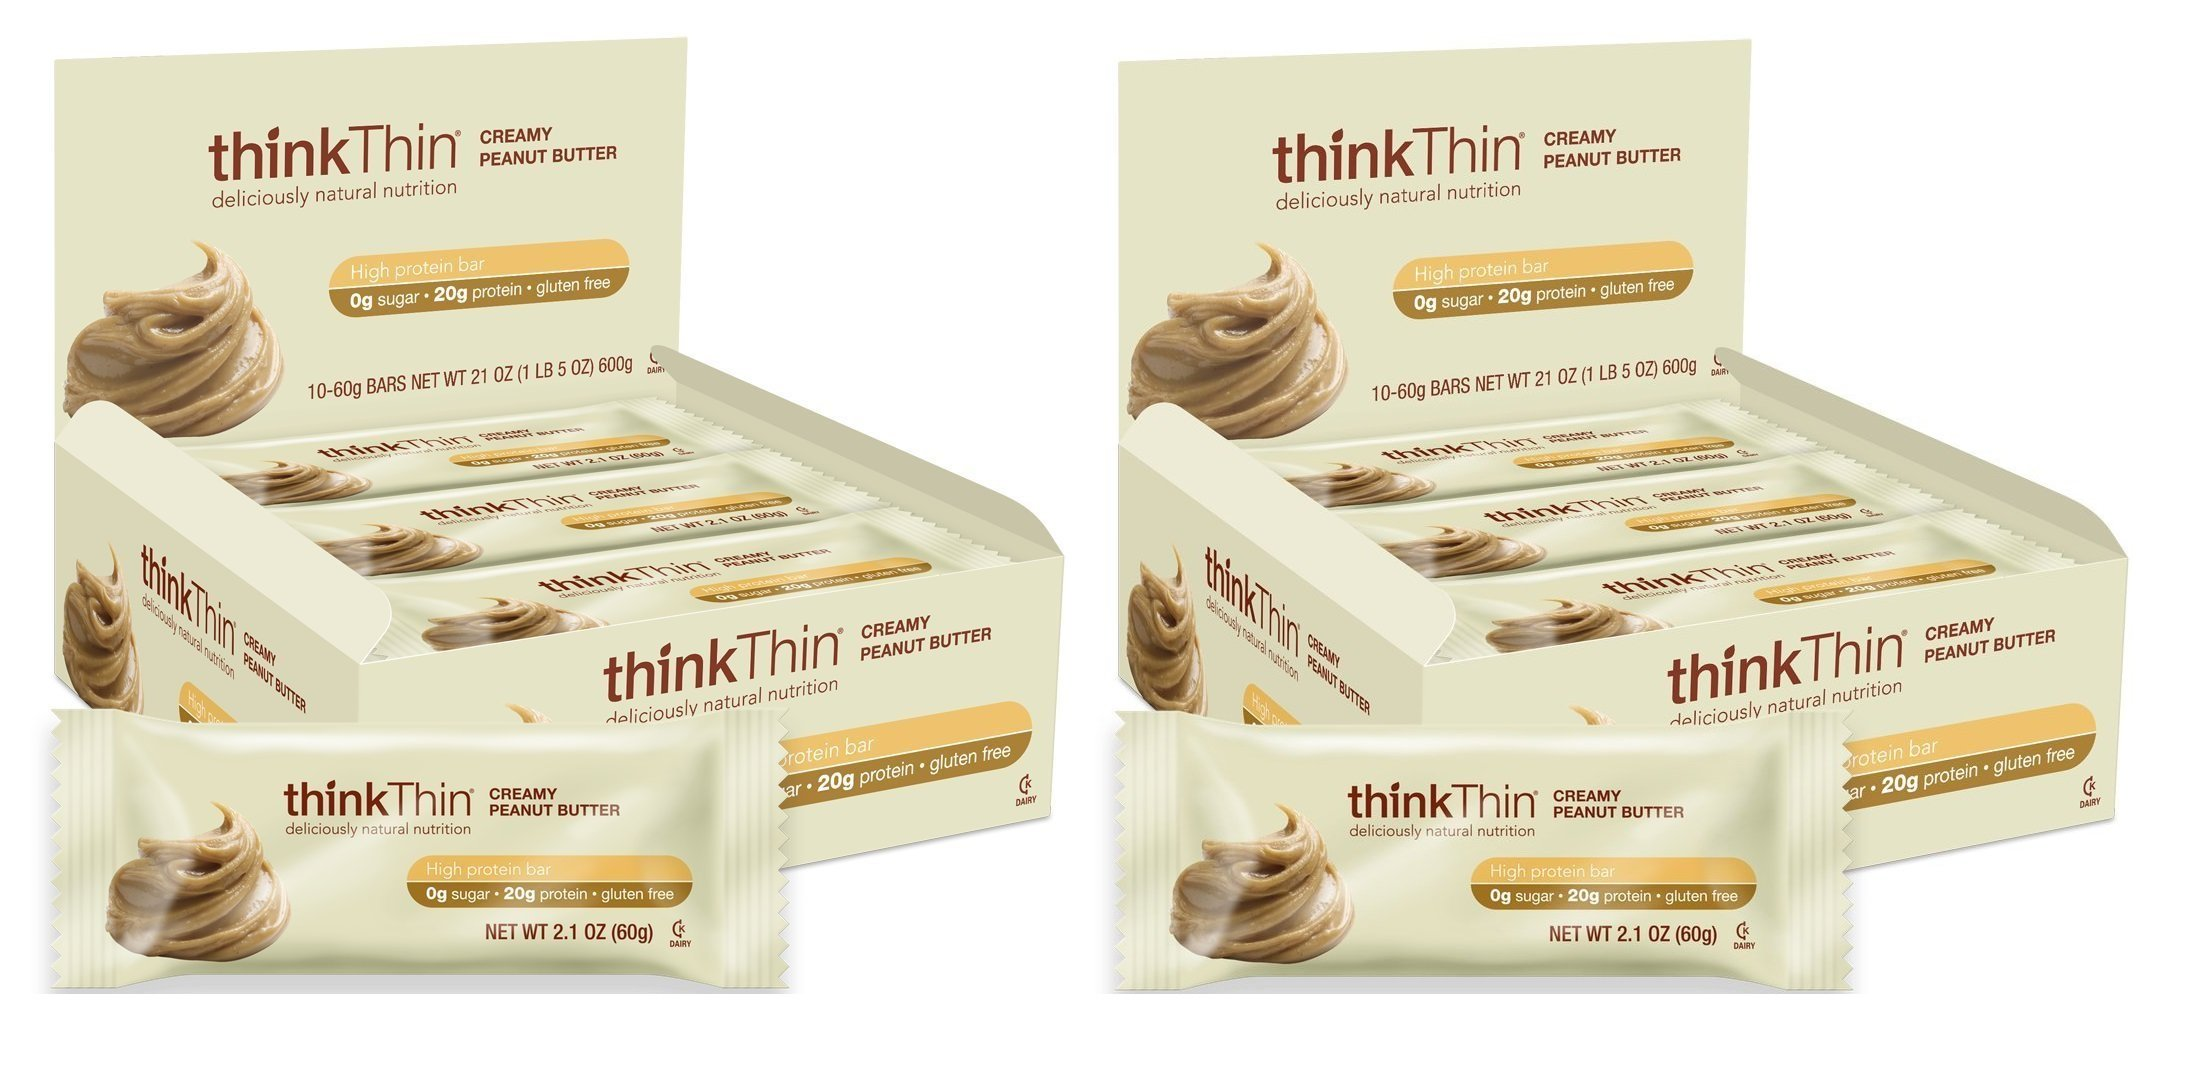 Think Thin 20 Pack (2 X Box of 10) (1,200g) - (Creamy Peanut Butter)